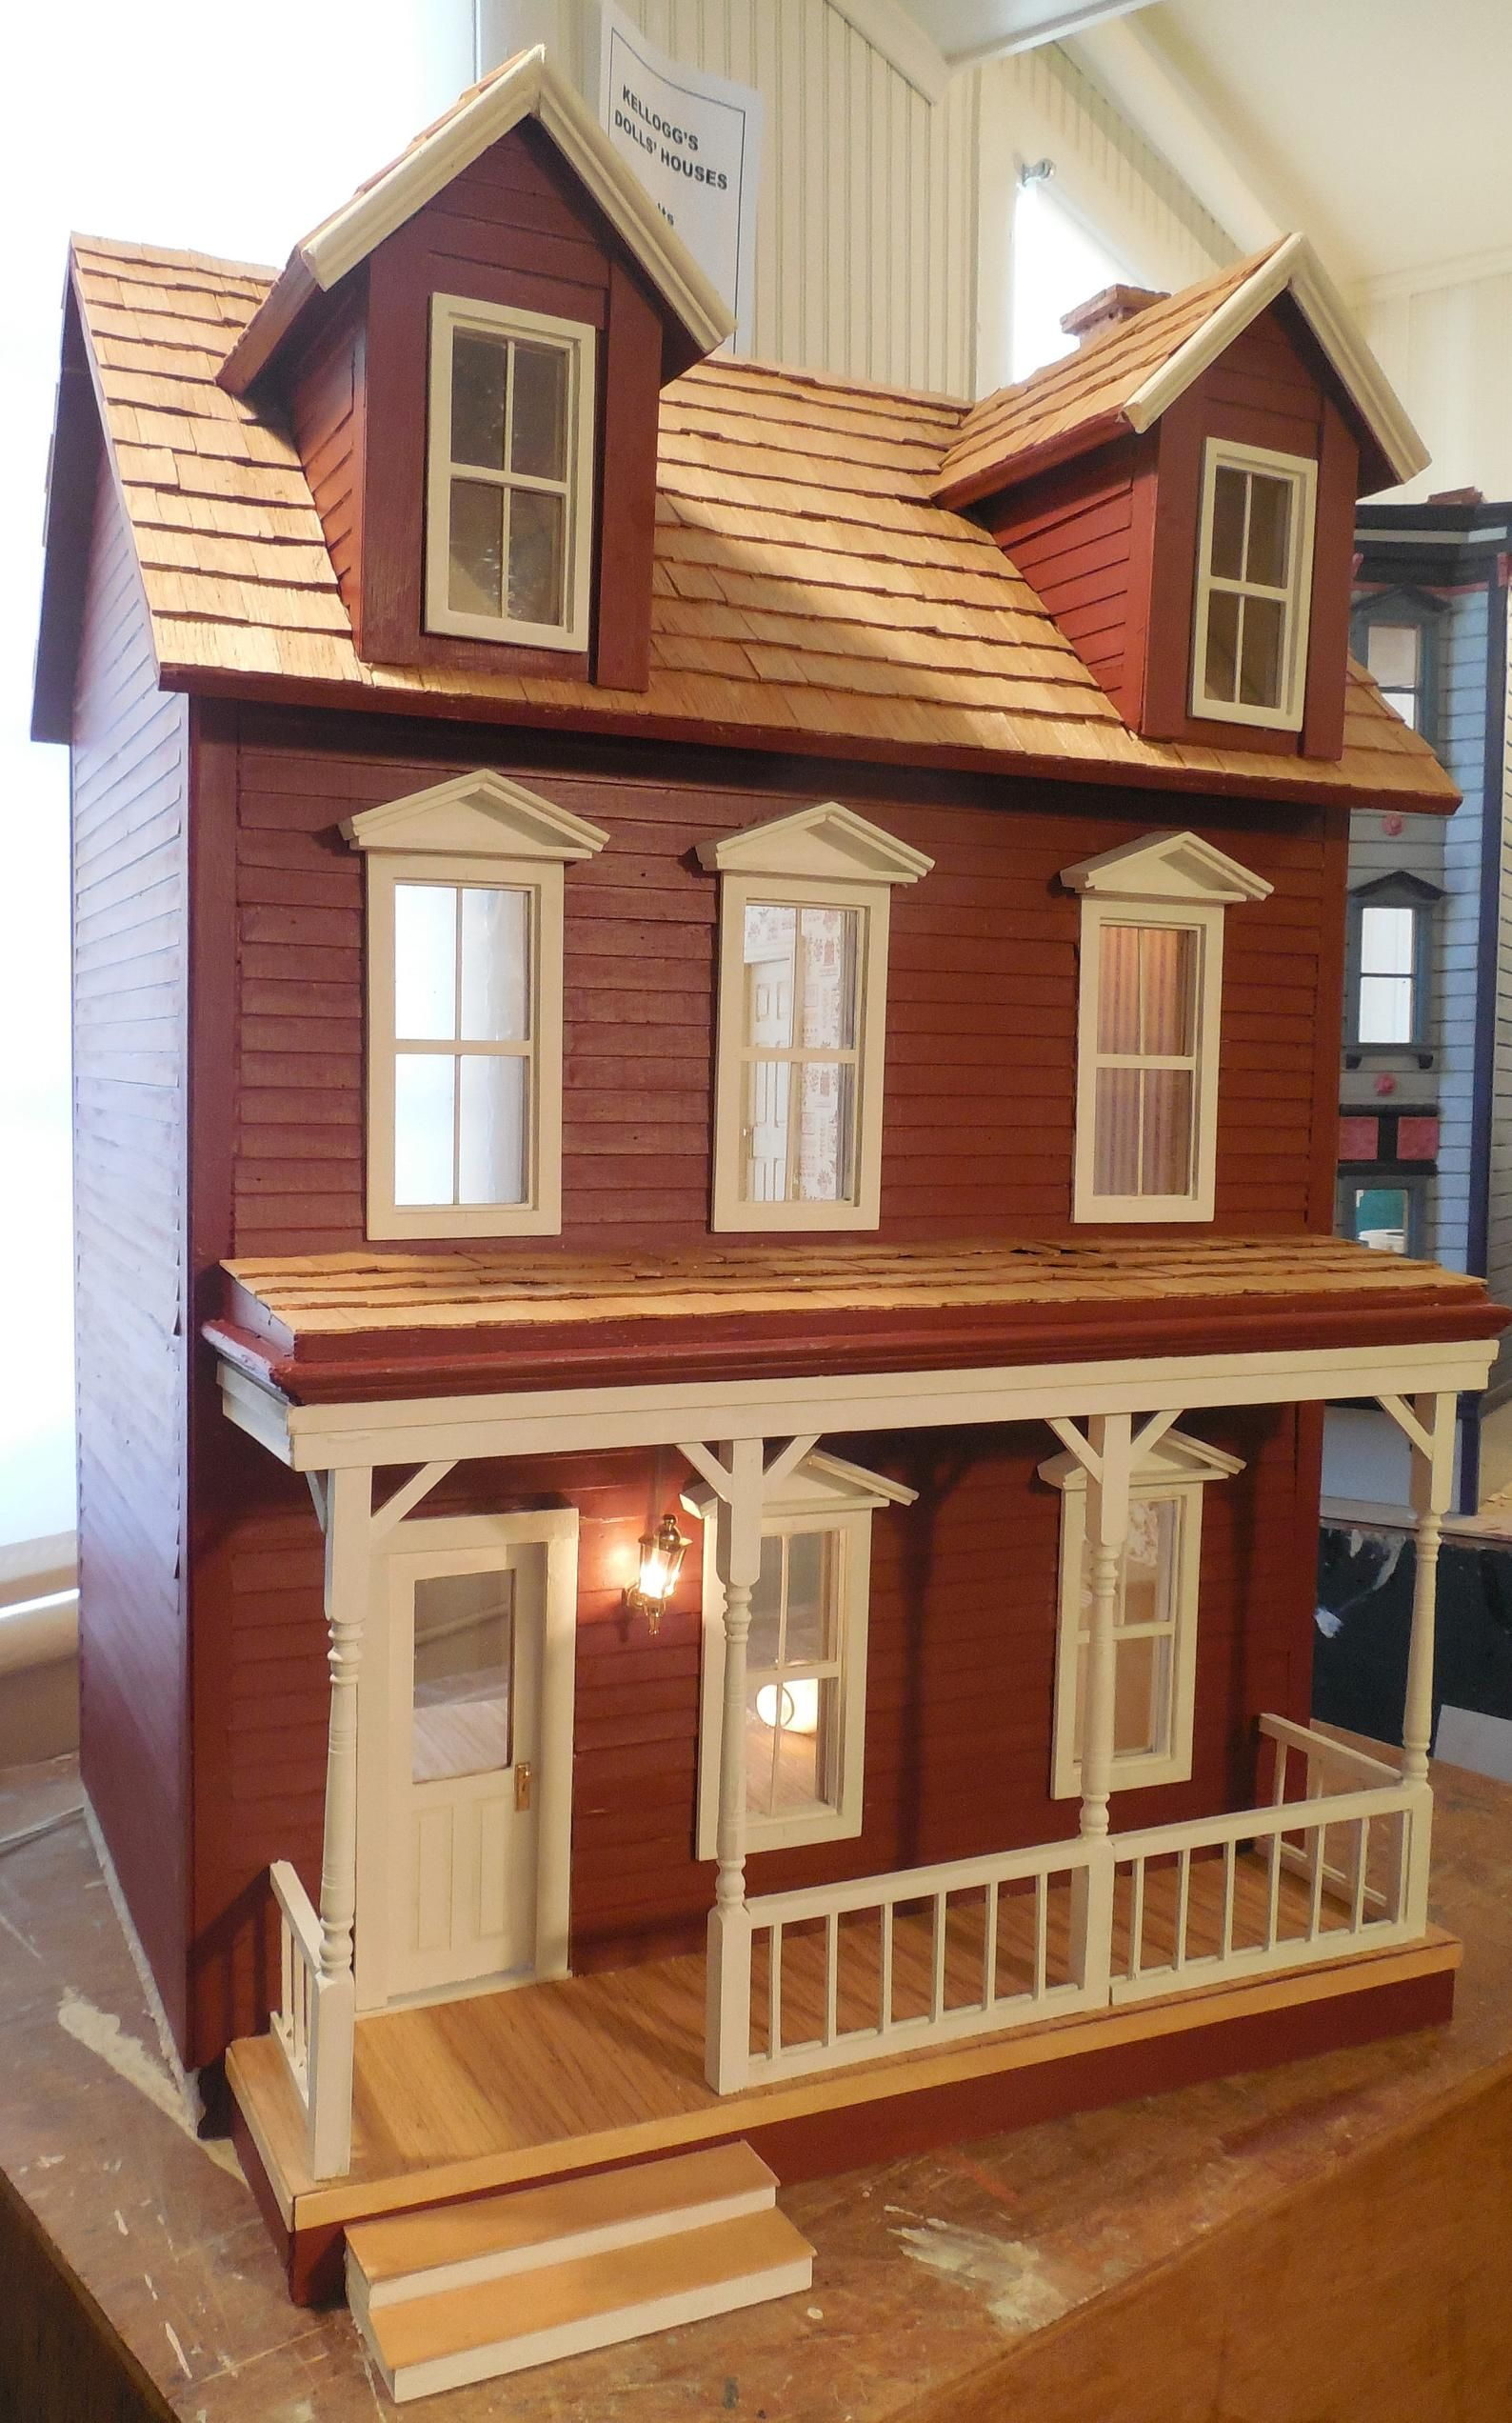 RED WOOD DORMERED Rustic Farmhouse Dollhouse Clapboard